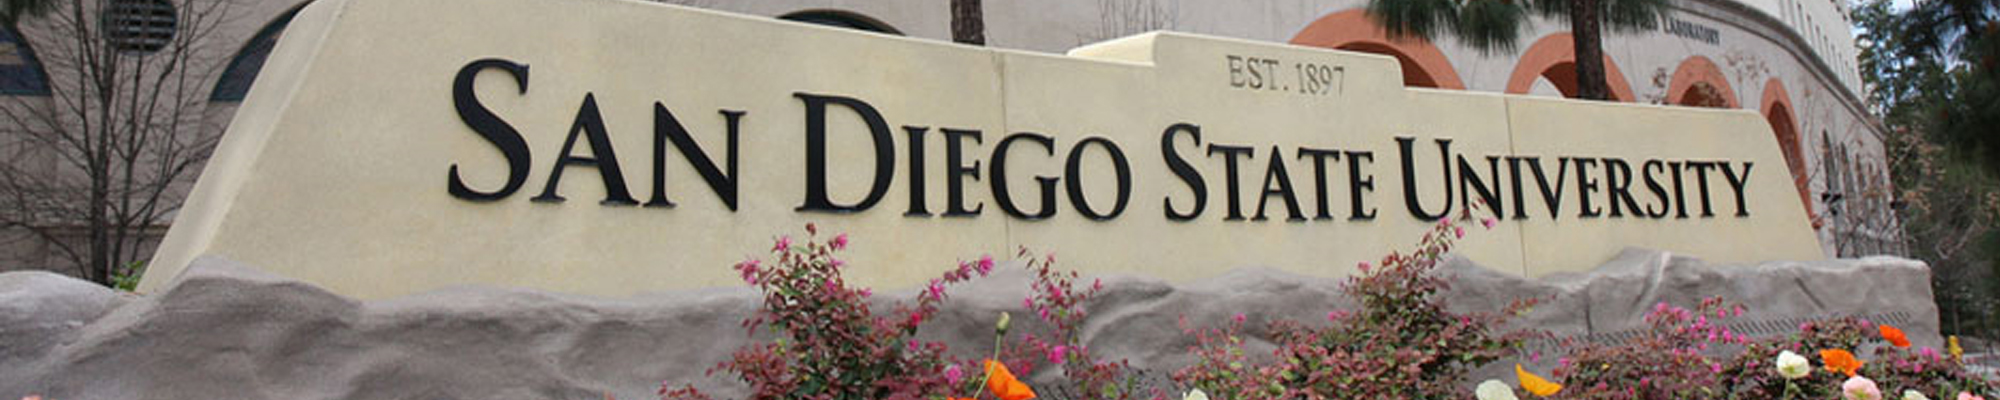 san diego state university sign